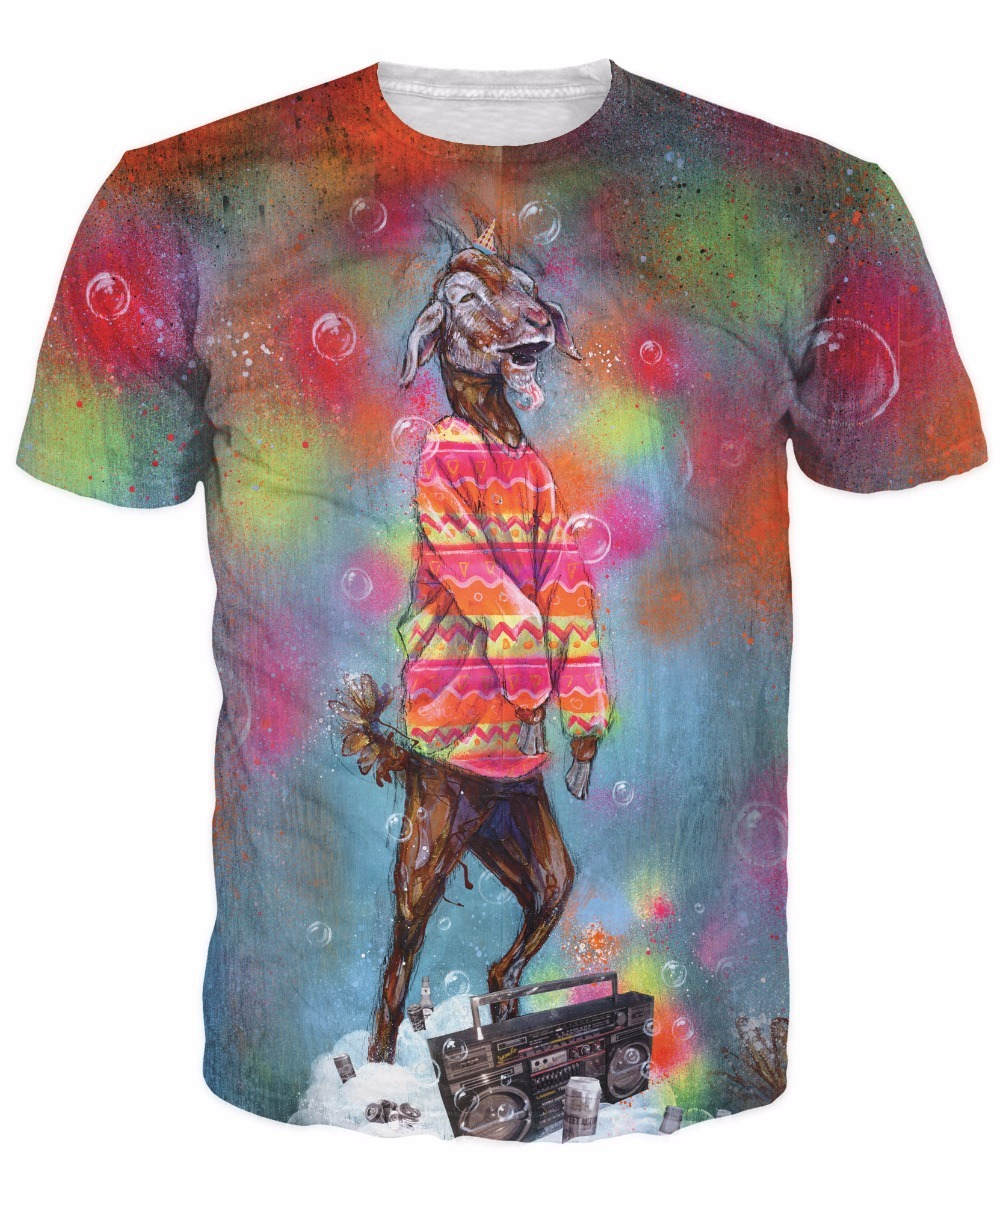 Super Trippy Party Goat T-Shirt Sick Women Men Tee Billy Goat Hipster Rockin Out Boombox Psychedelic Shirt Sexy T Shirt Tops